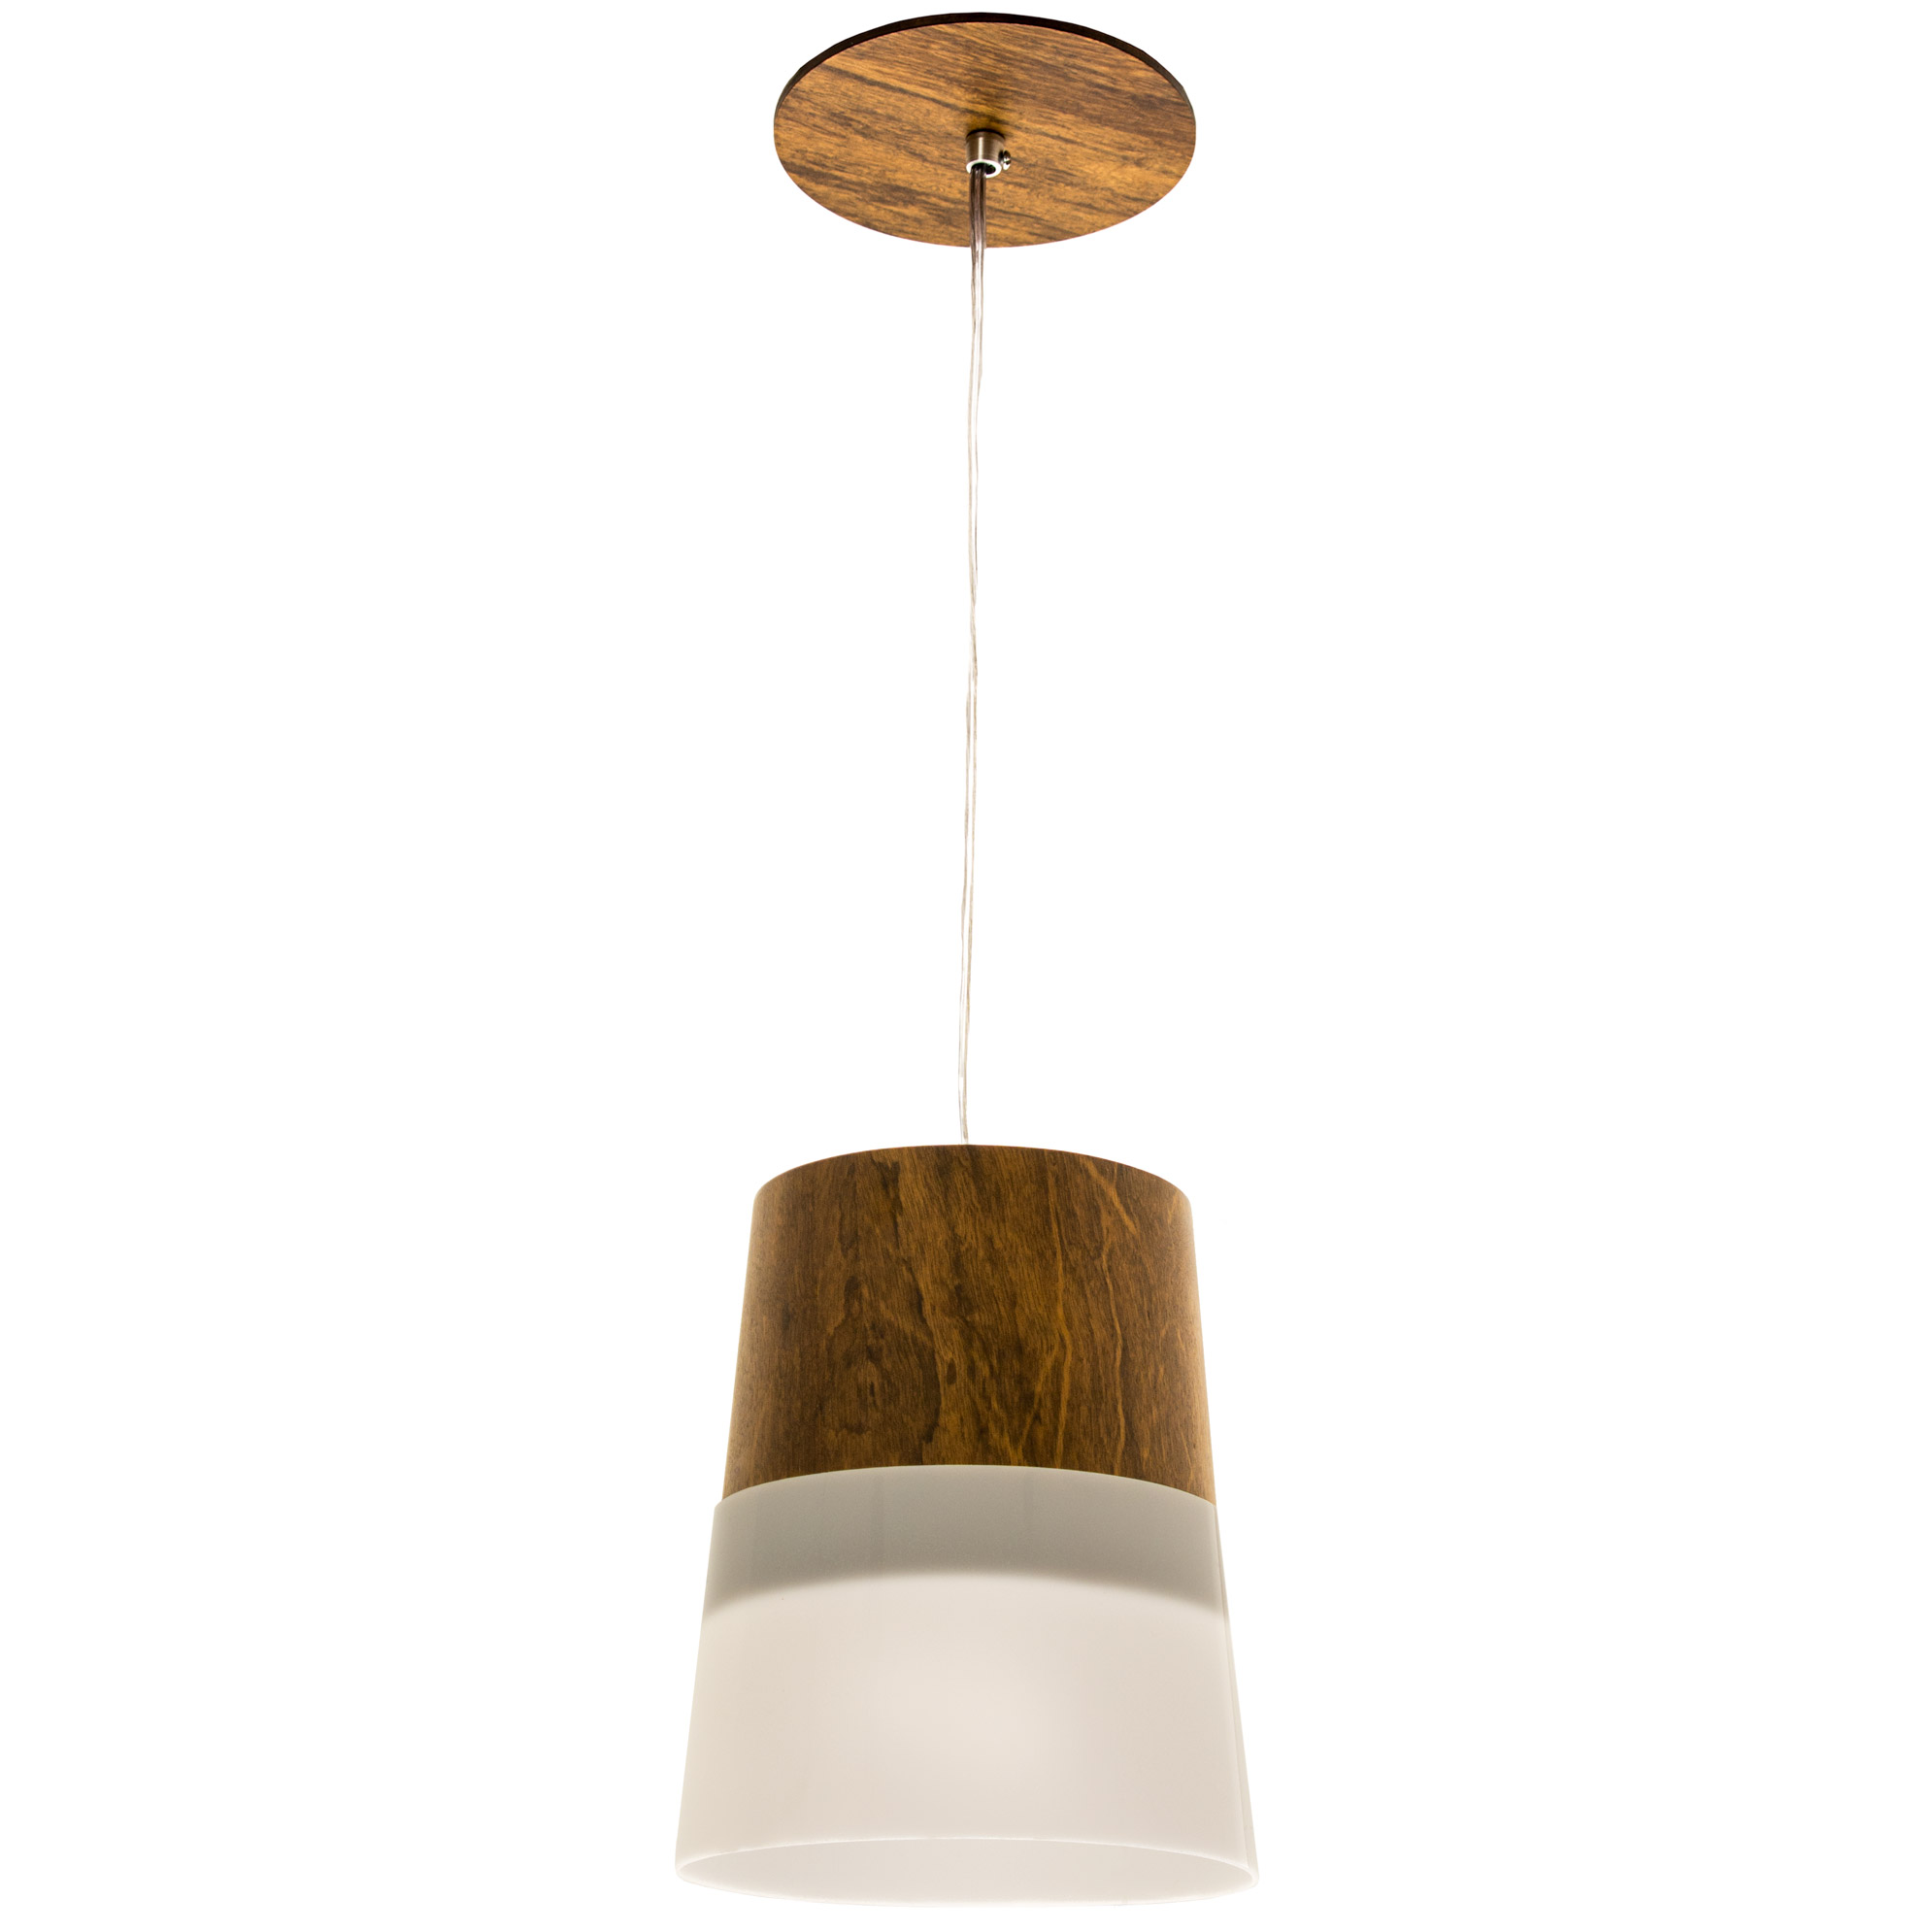 Tapered line pendant by lightology collection lc ac 1151 18 smooth tapered line pendant by lightology collection lc ac 1151 18 mozeypictures Choice Image